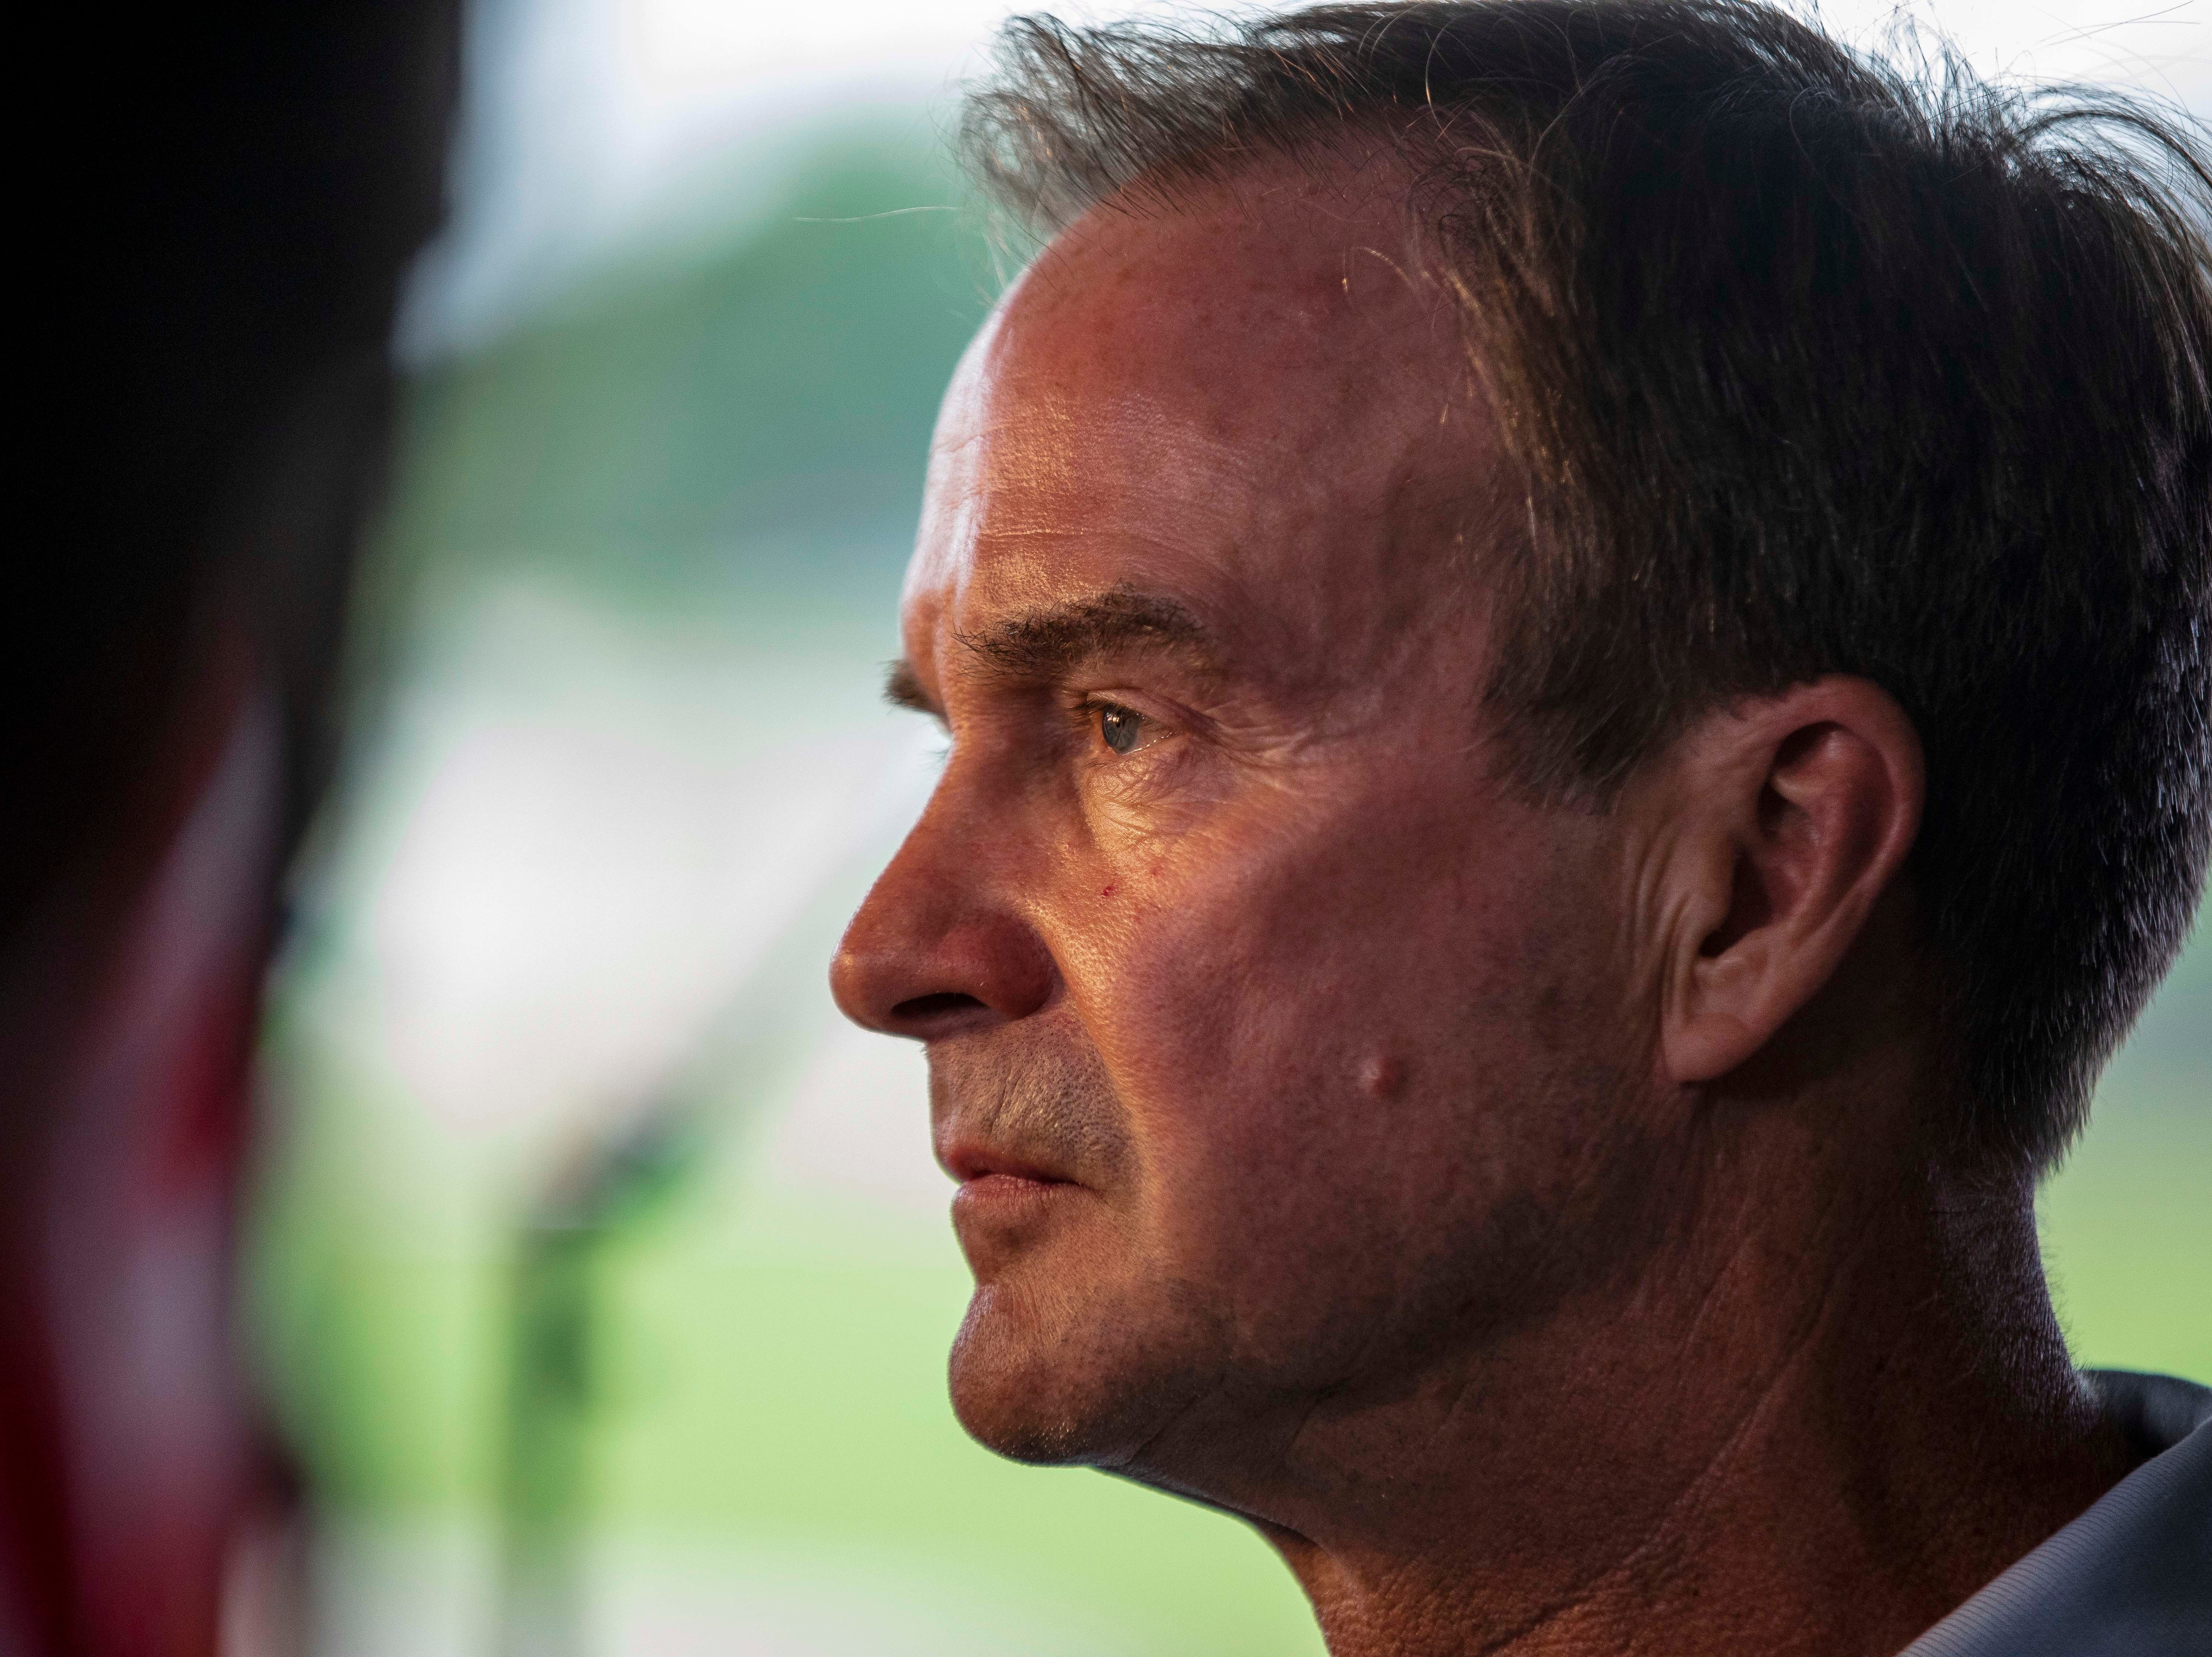 Michigan Republican gubernatorial candidate, Bill Schuette, speaks to members of the media ahead of his election day party at Dow Diamond in Midland, Mich., Tuesday, Aug. 7, 2018.